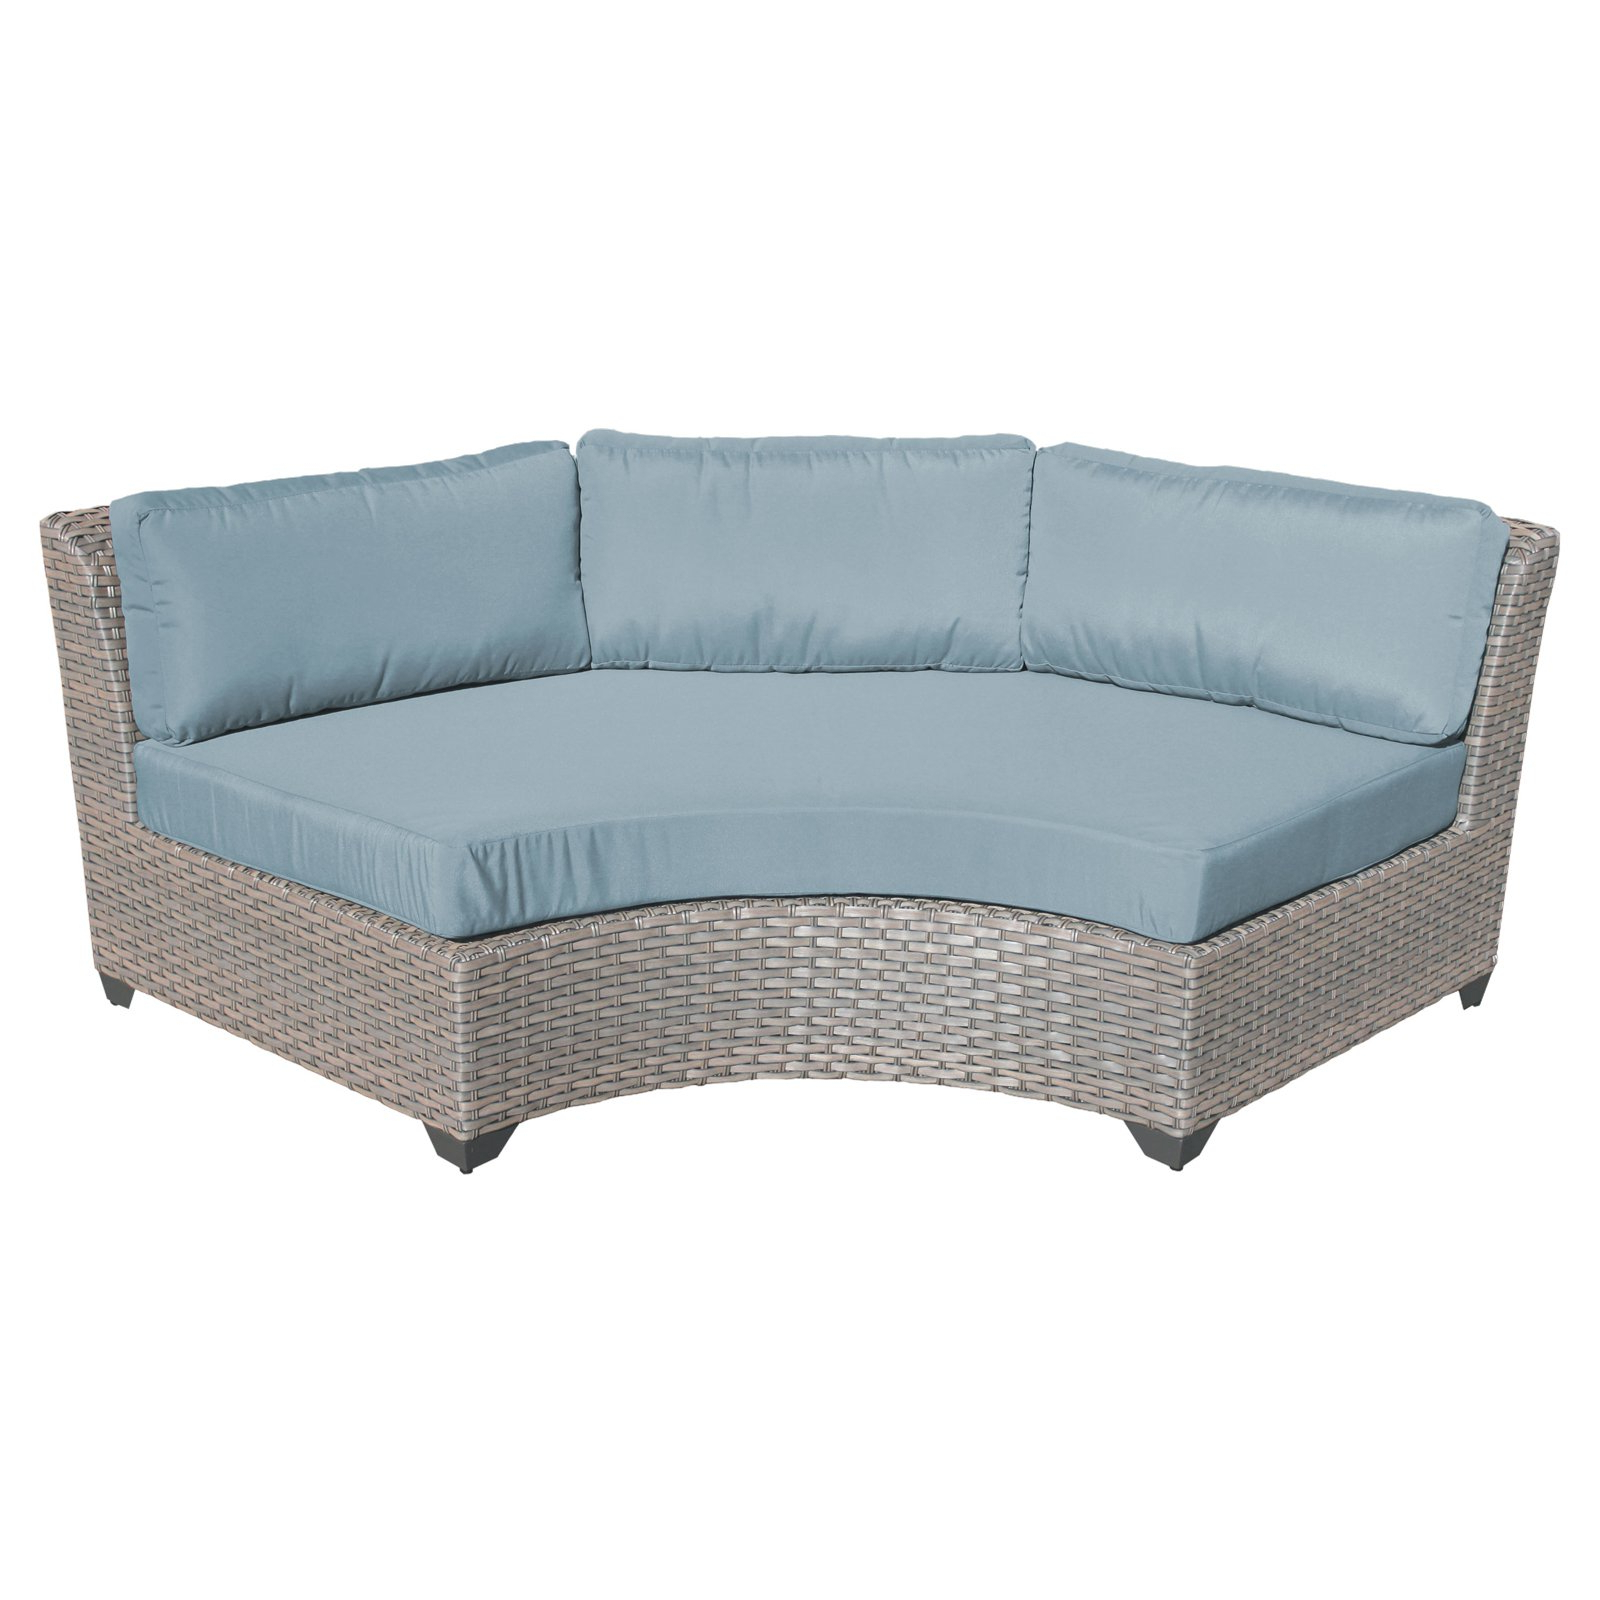 Camak Patio Loveseats With Cushions Regarding Most Popular Tk Classics Florence Curved Outdoor Middle Chair With 2 Sets (View 3 of 20)